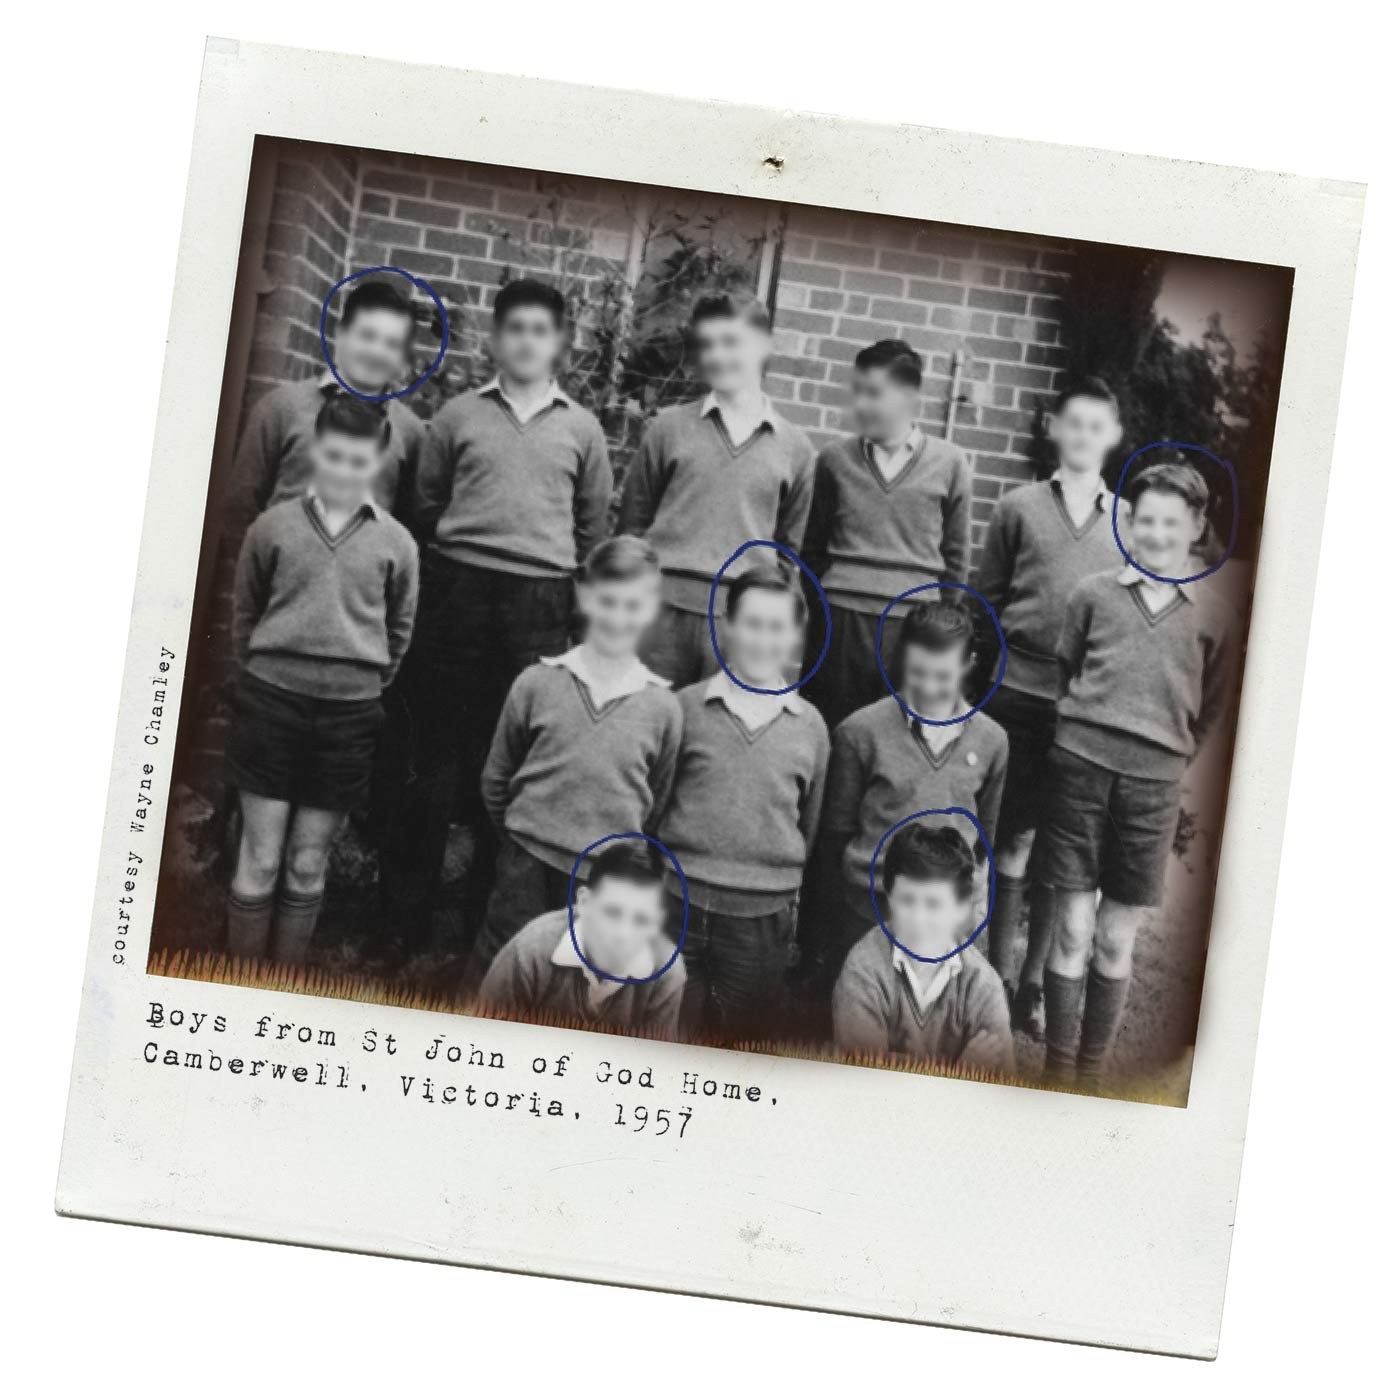 Polaroid photograph showing a group of boys in school uniform, standing in two rows, with another two boys kneeling at the front. The boys' faces have been blurred. Six of the 12 have blue rings drawn around their faces. Typed text below reads 'Boys from St John of God Home, Camberwell, Victoria, 1957. 'Courtesy Wayne Chamley' is typed at the side. - click to view larger image